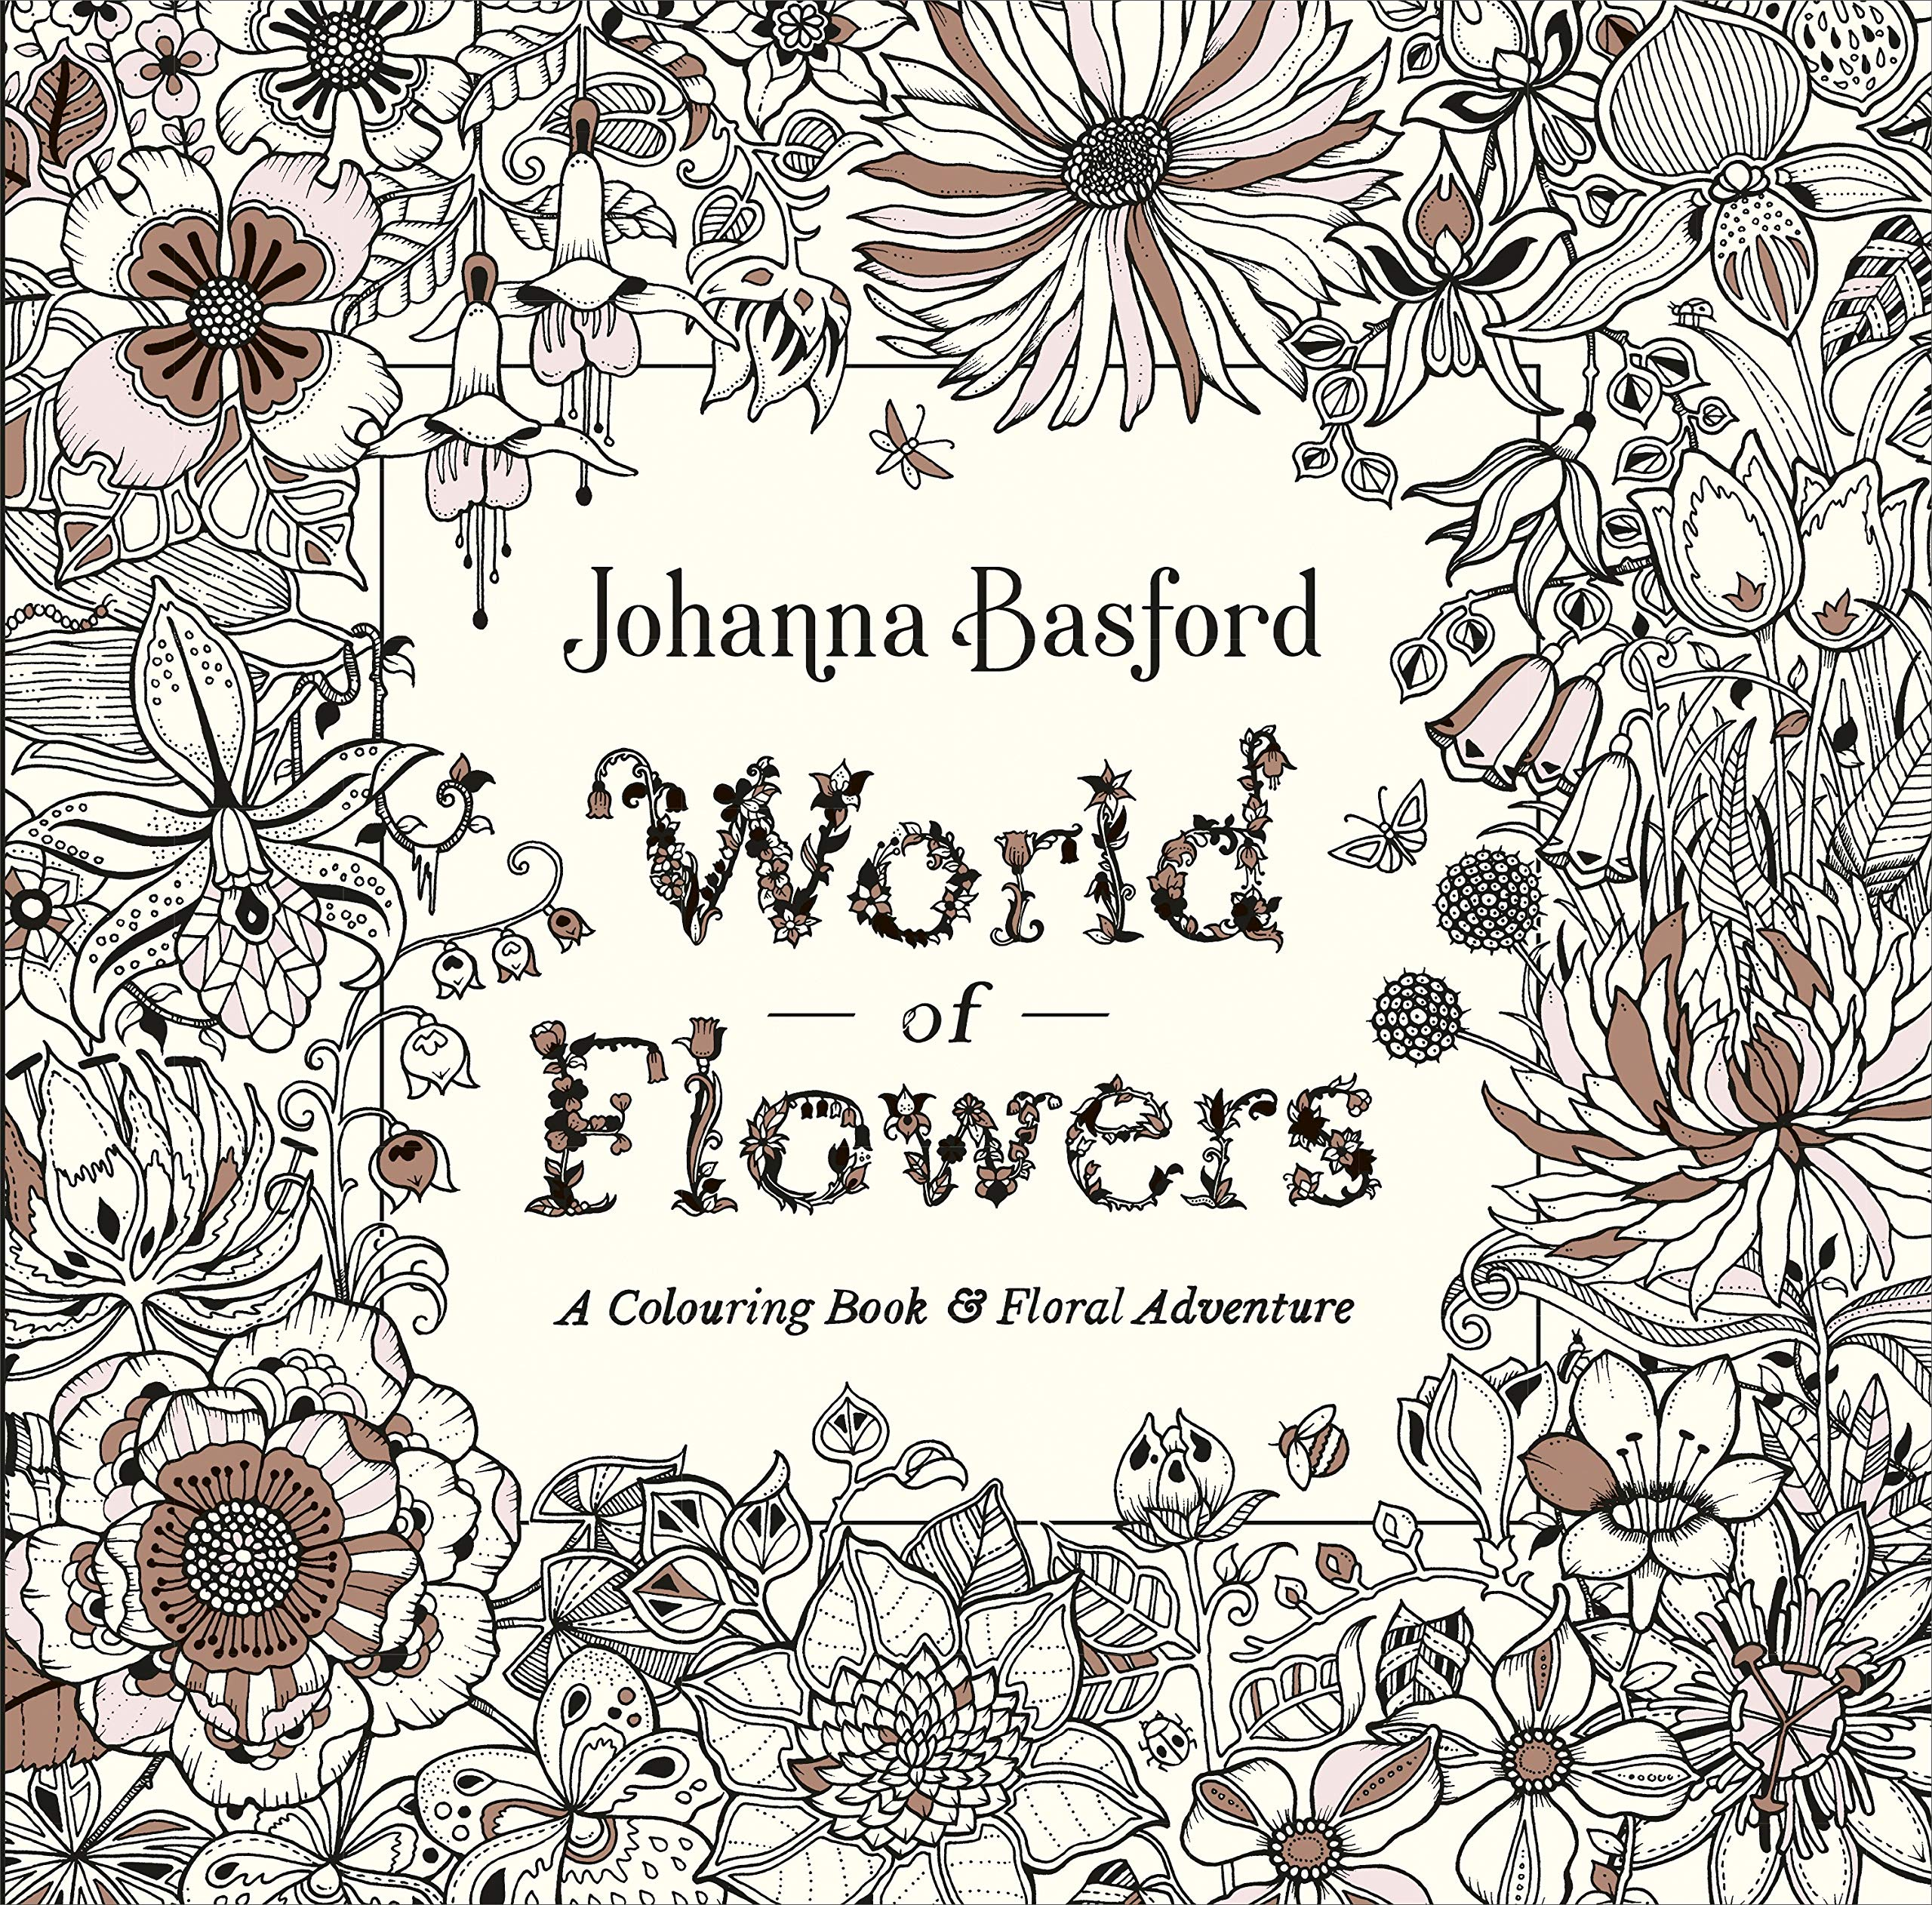 World Of Flowers A Colouring Book And Floral Adventure Amazon Co